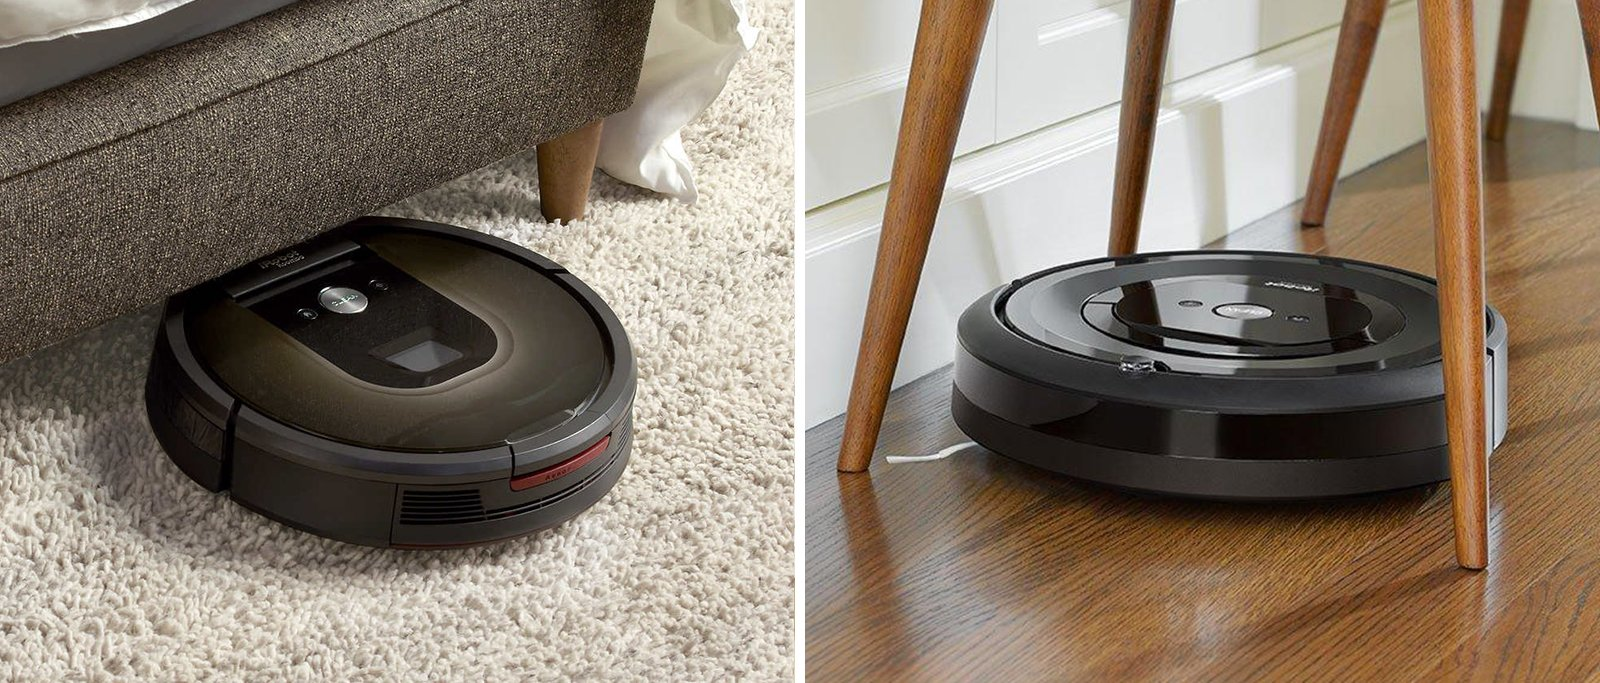 Roomba 985 vs e5 Comparison